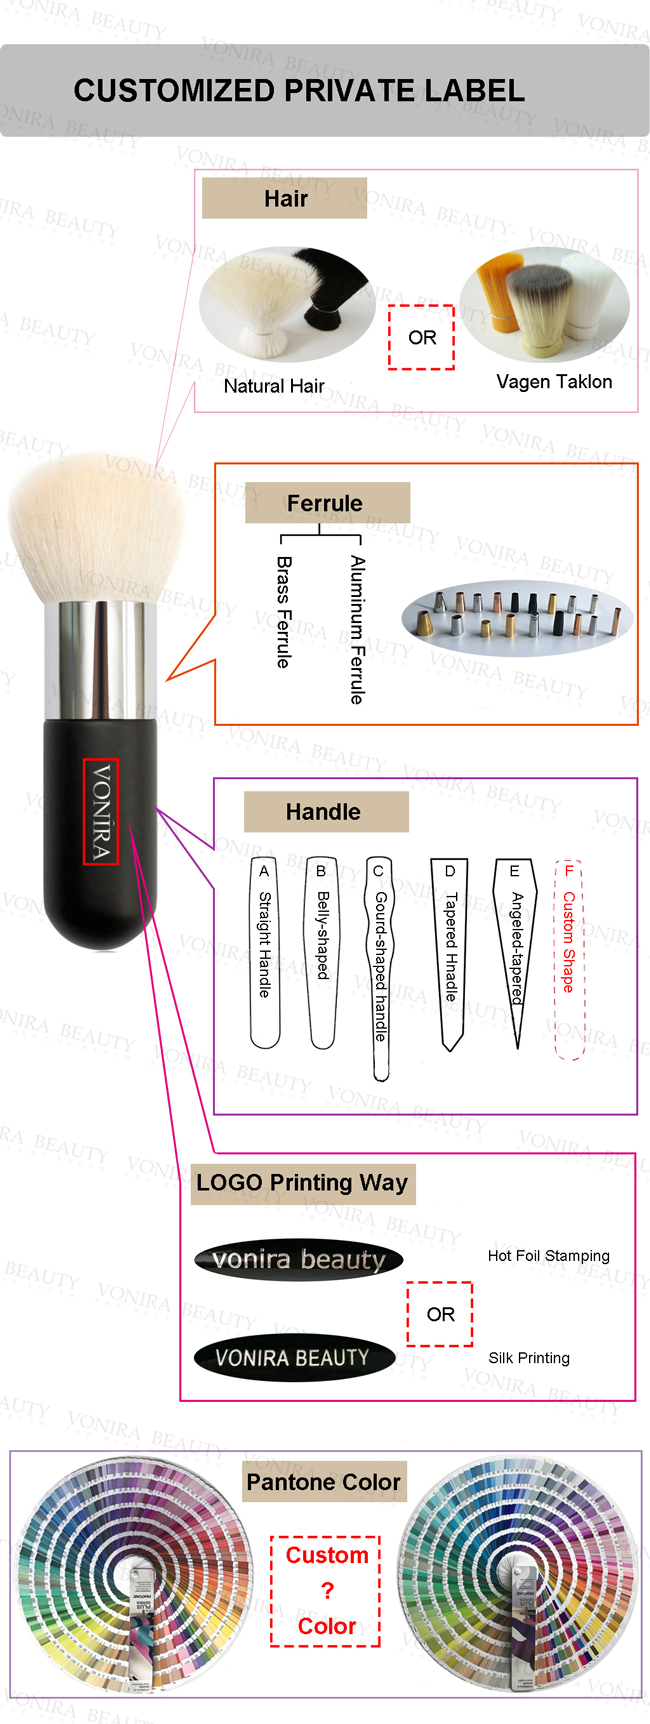 Precision Eye Shading High Quality Makeup Brushes With Premium Pony Hair